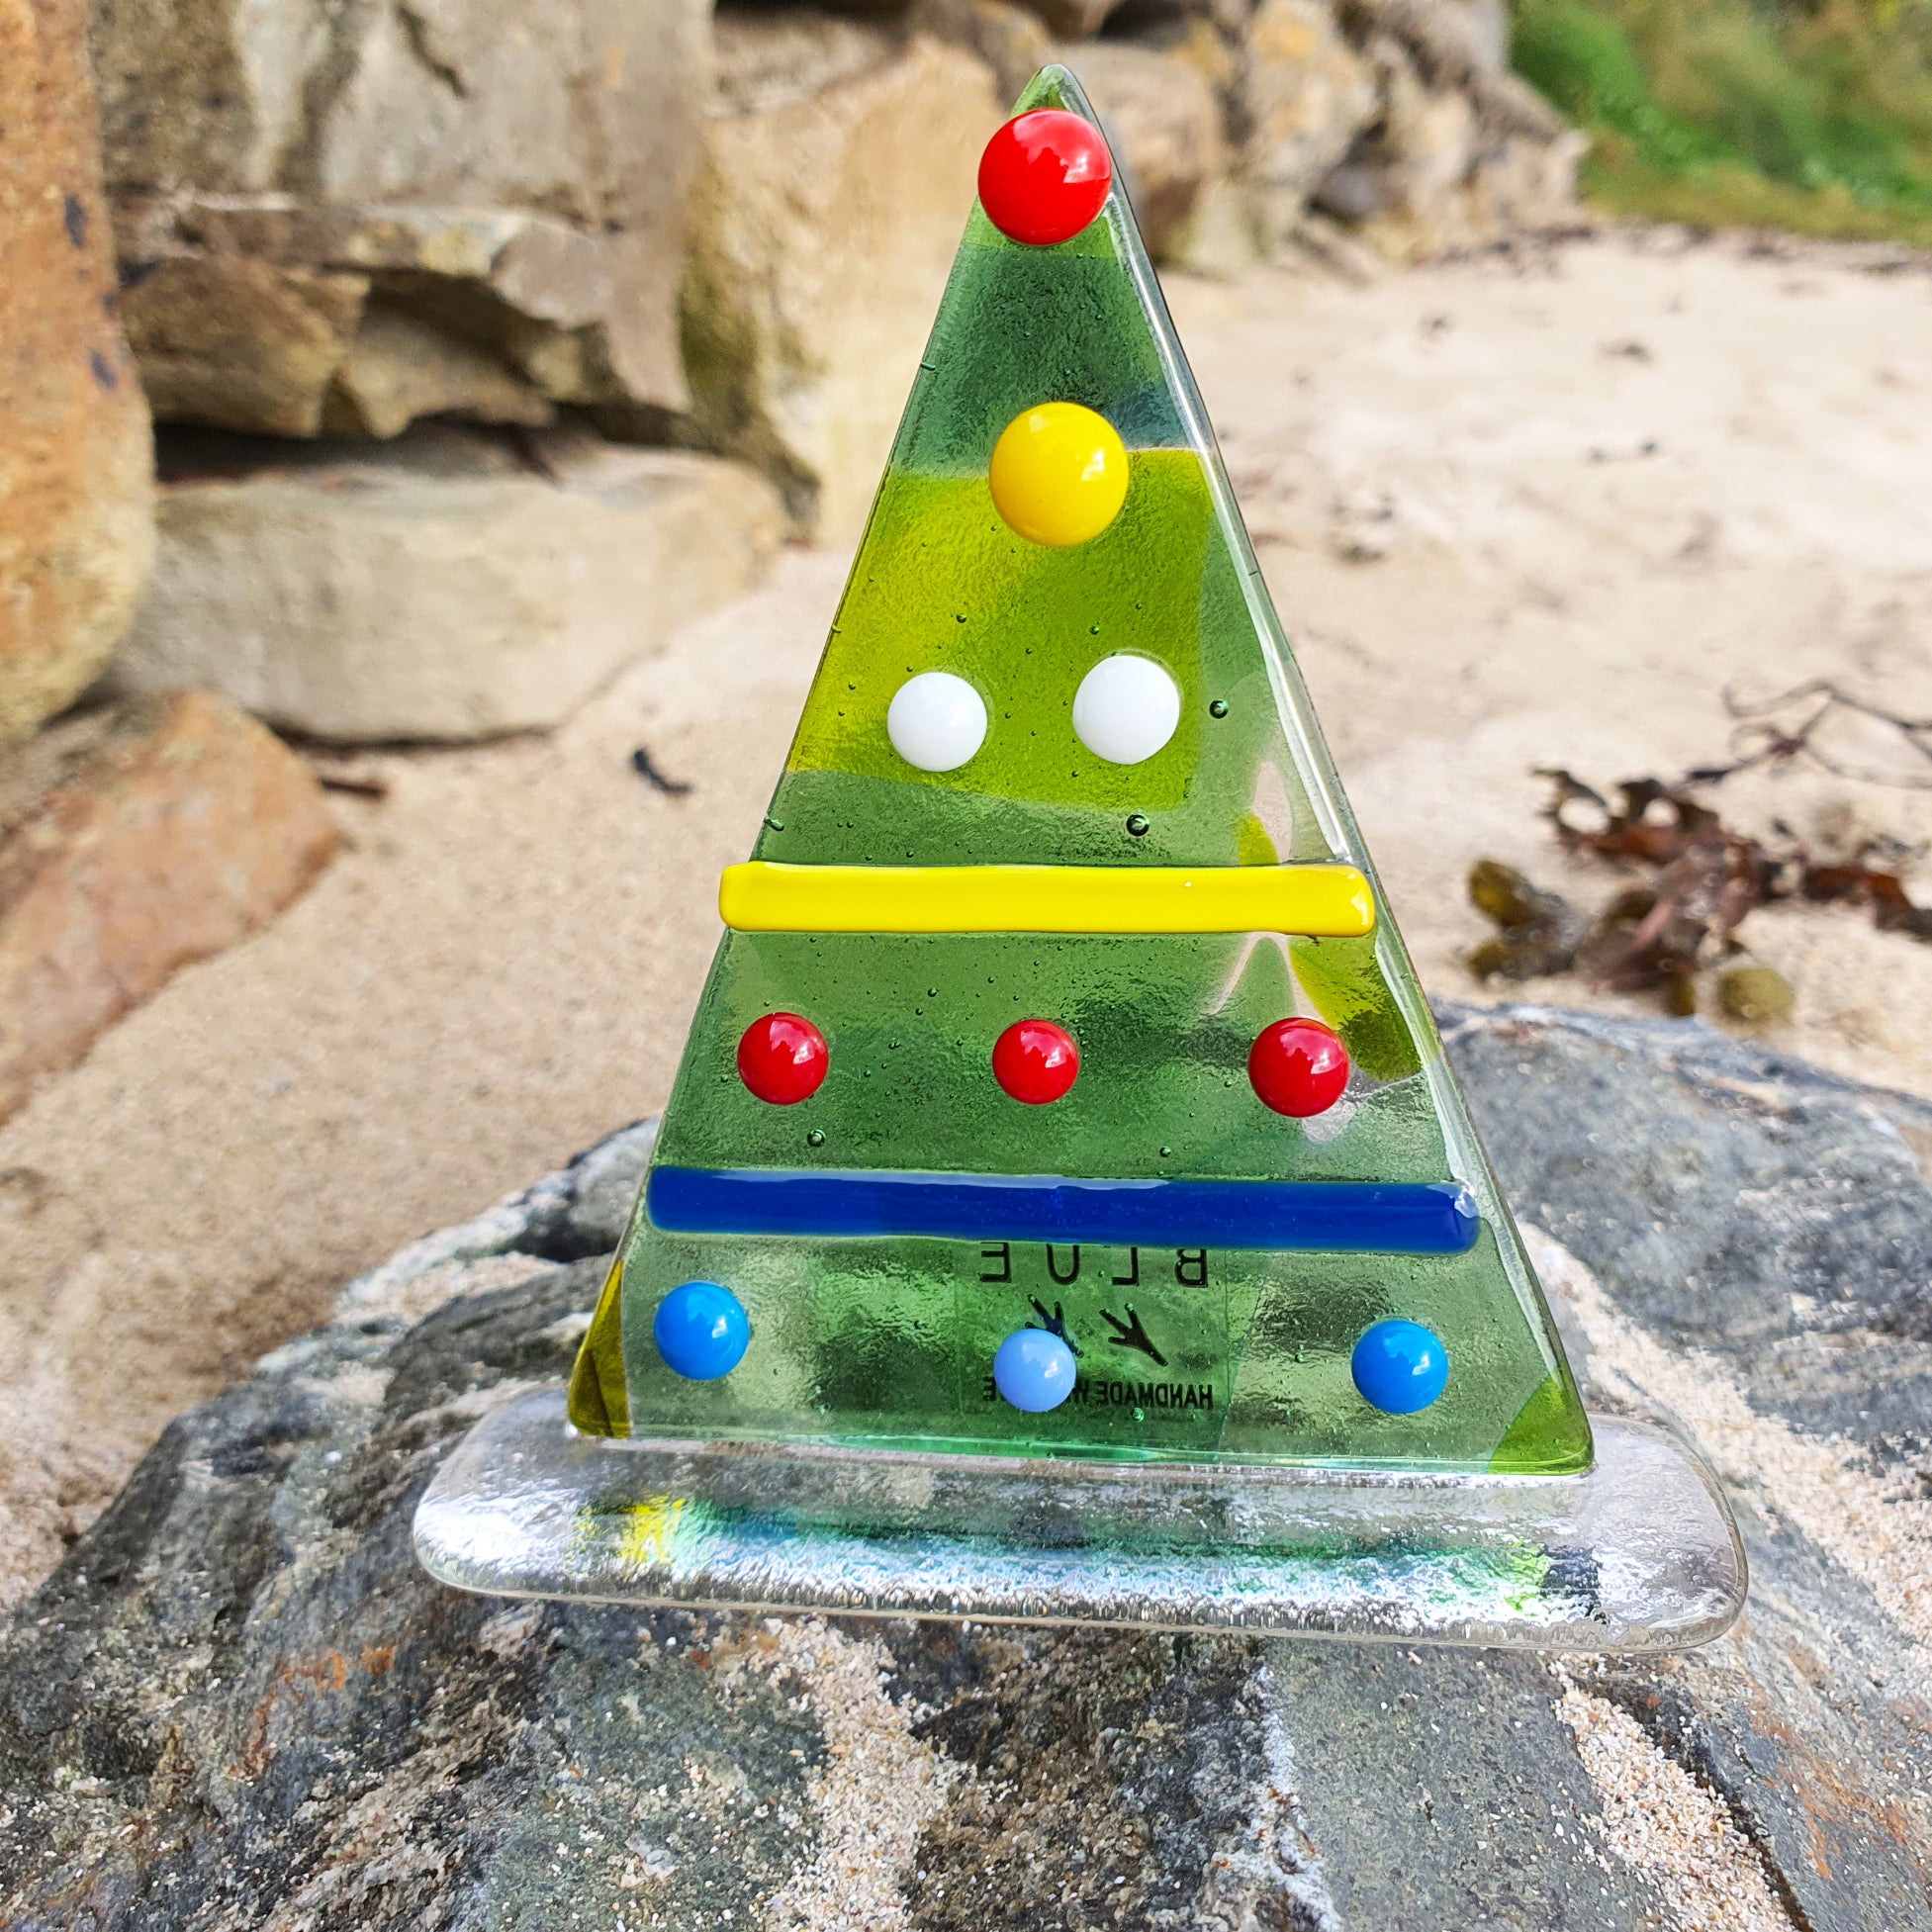 Fused glass freestanding Christmas Tree, made by Connemara Blue